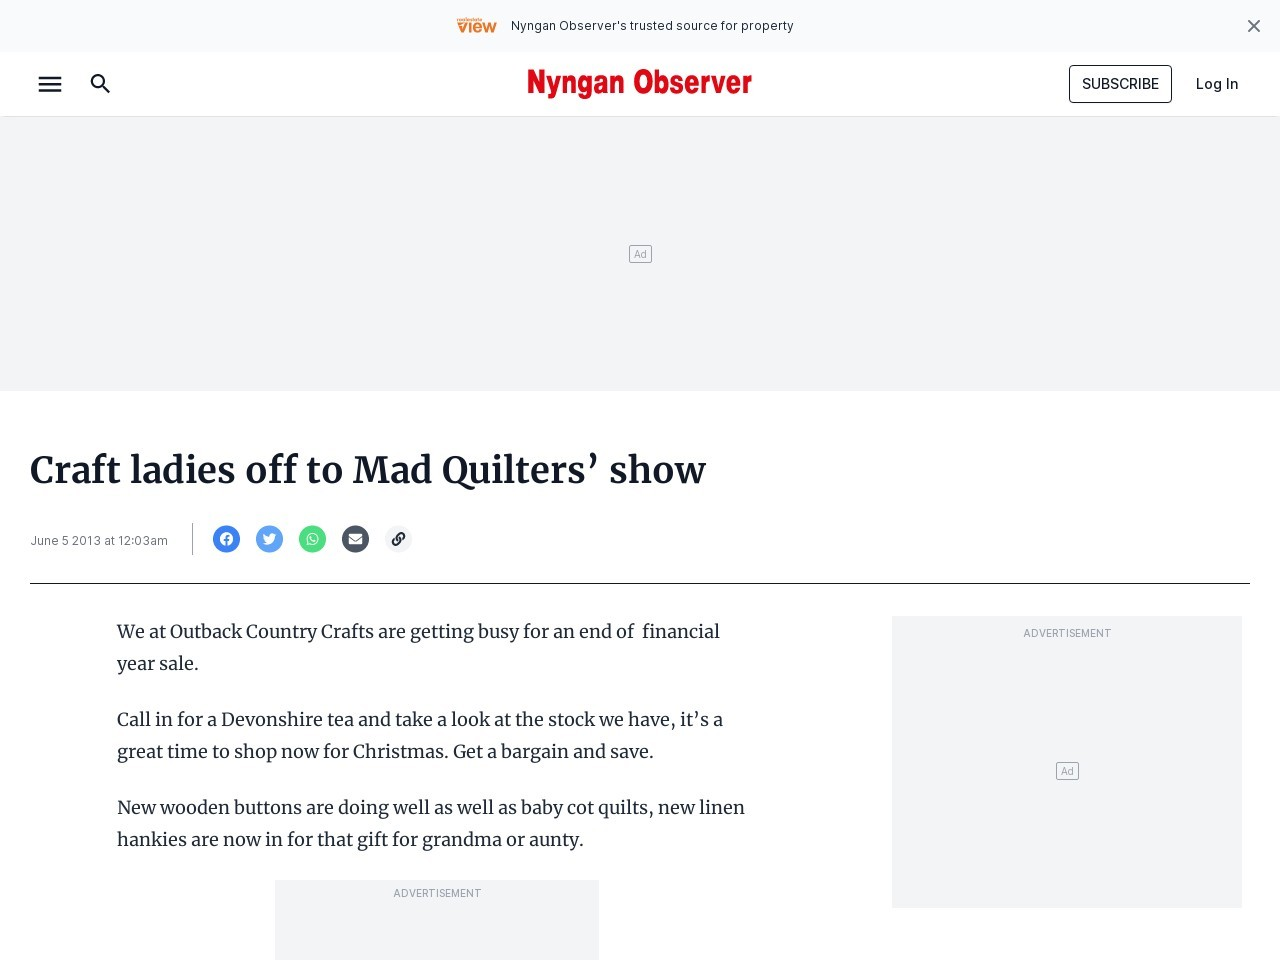 Craft ladies off to Mad Quilters' show